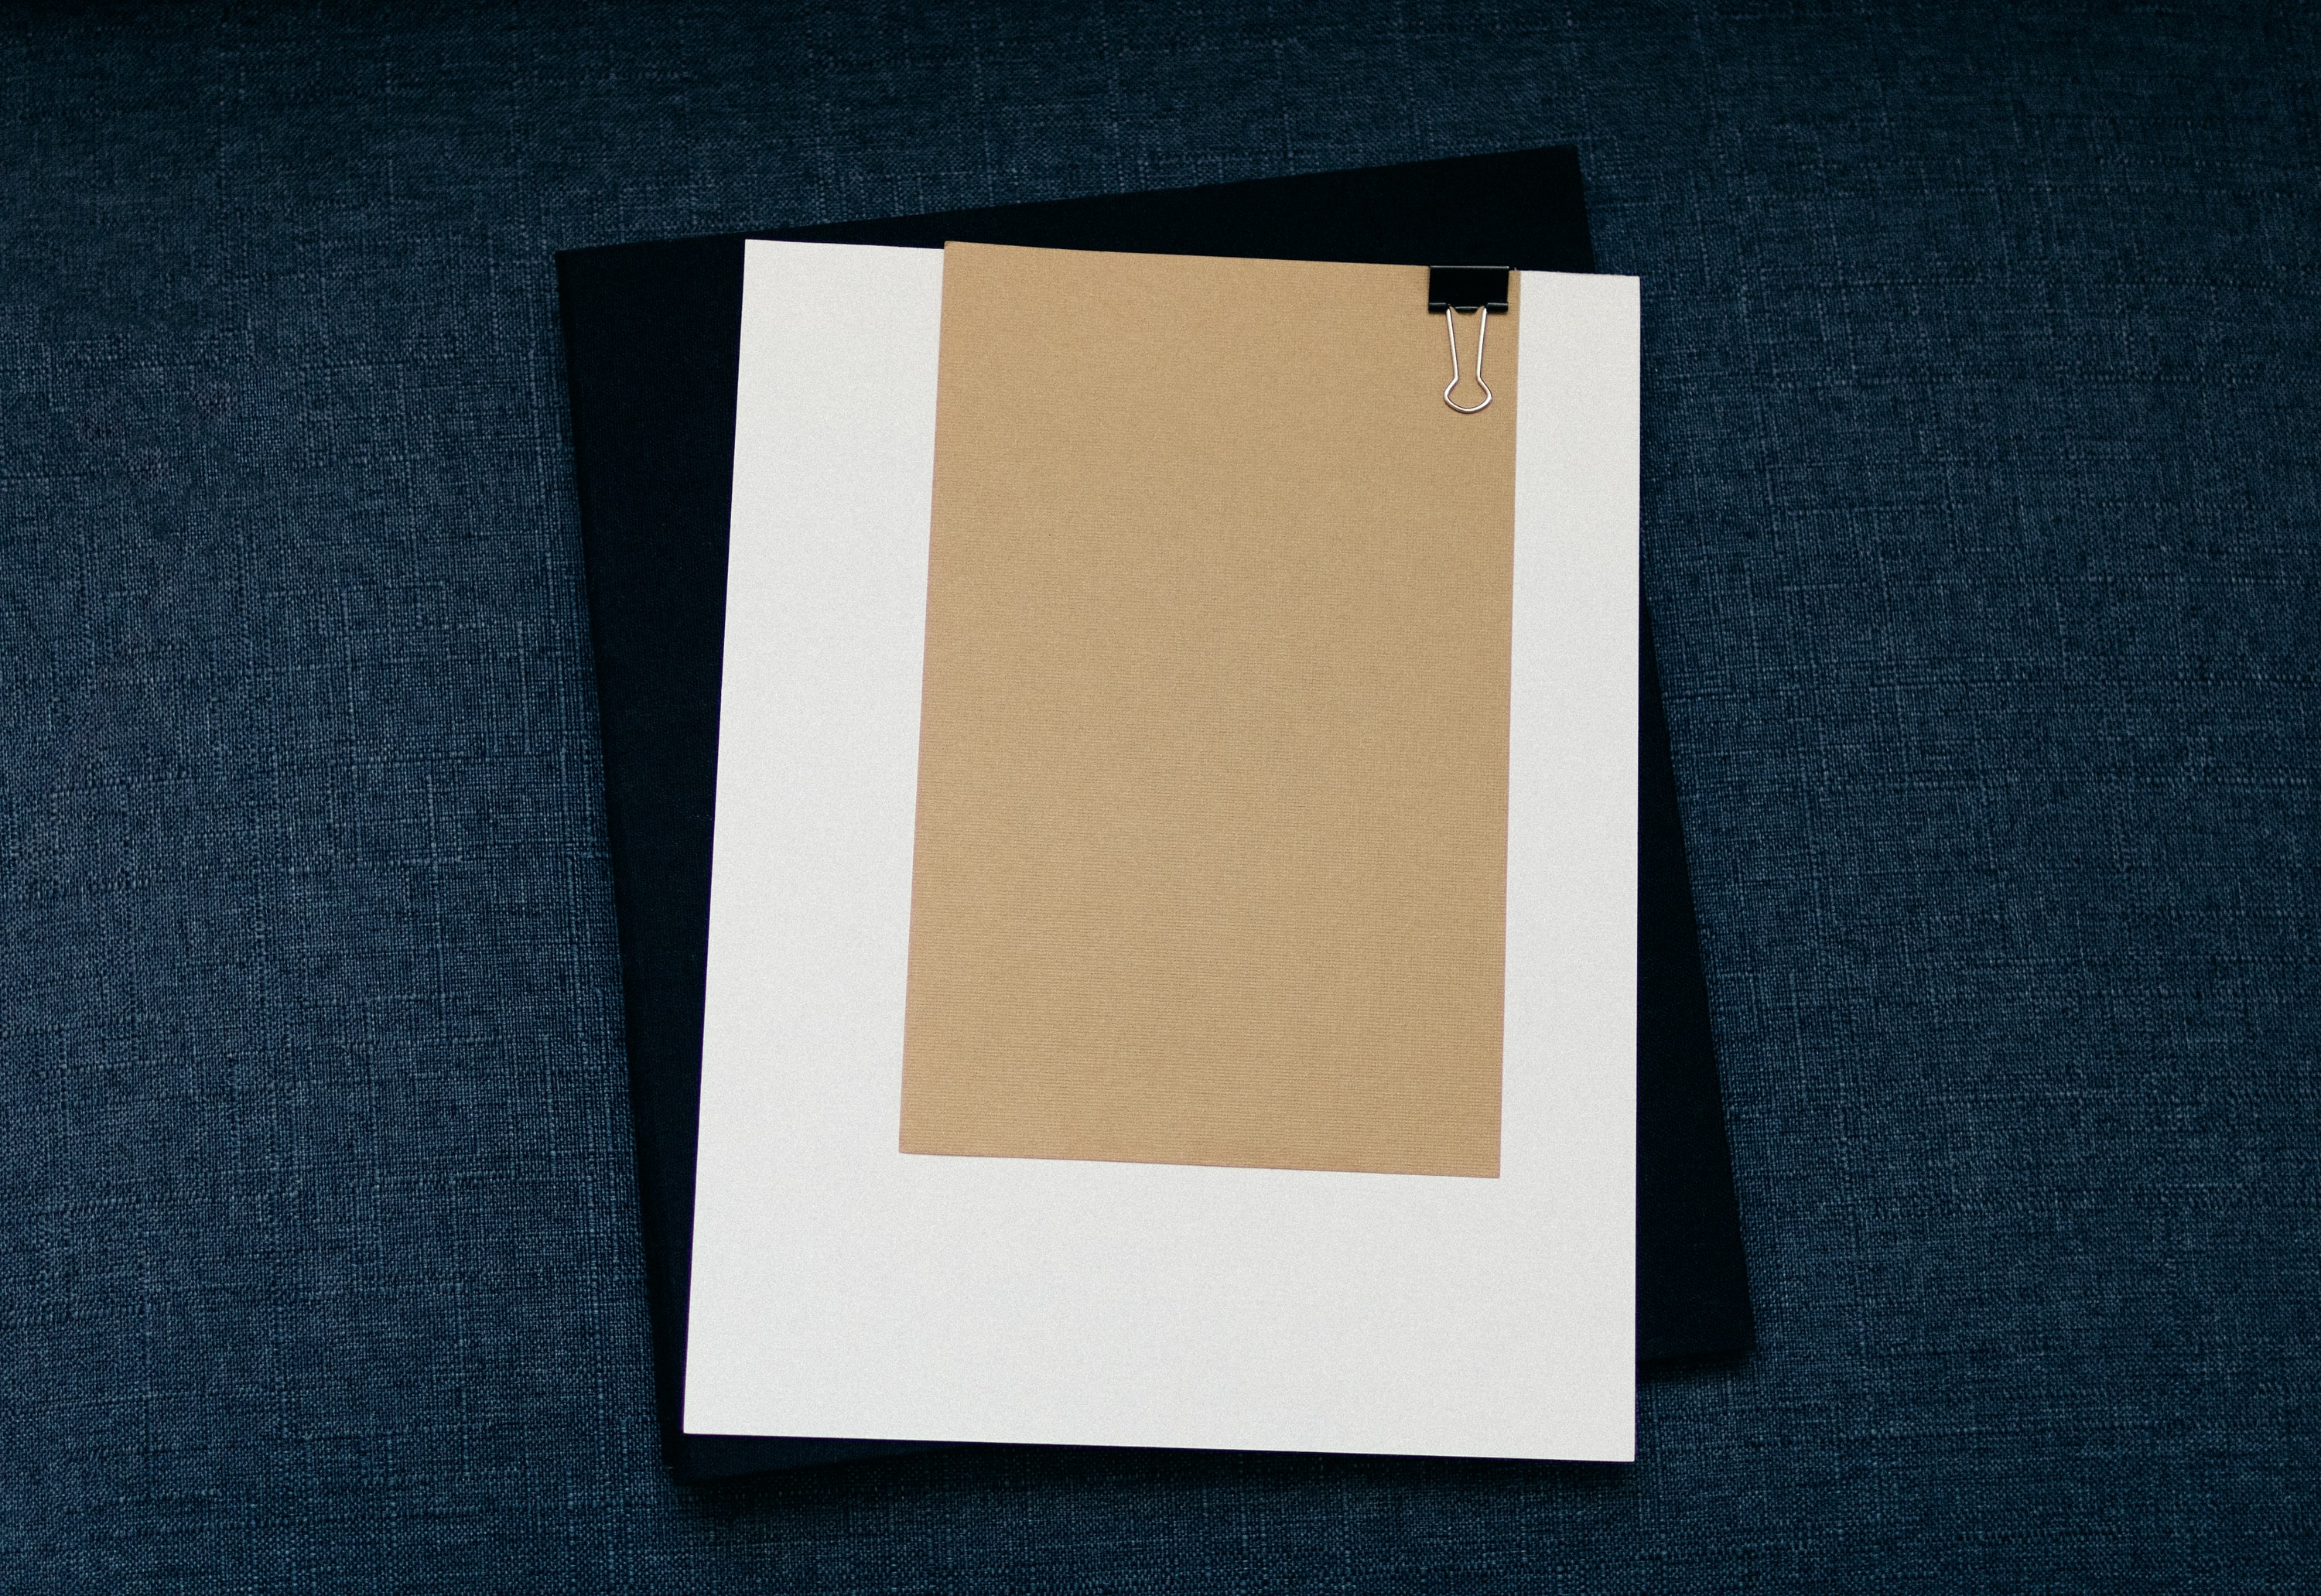 white clip board on black surface